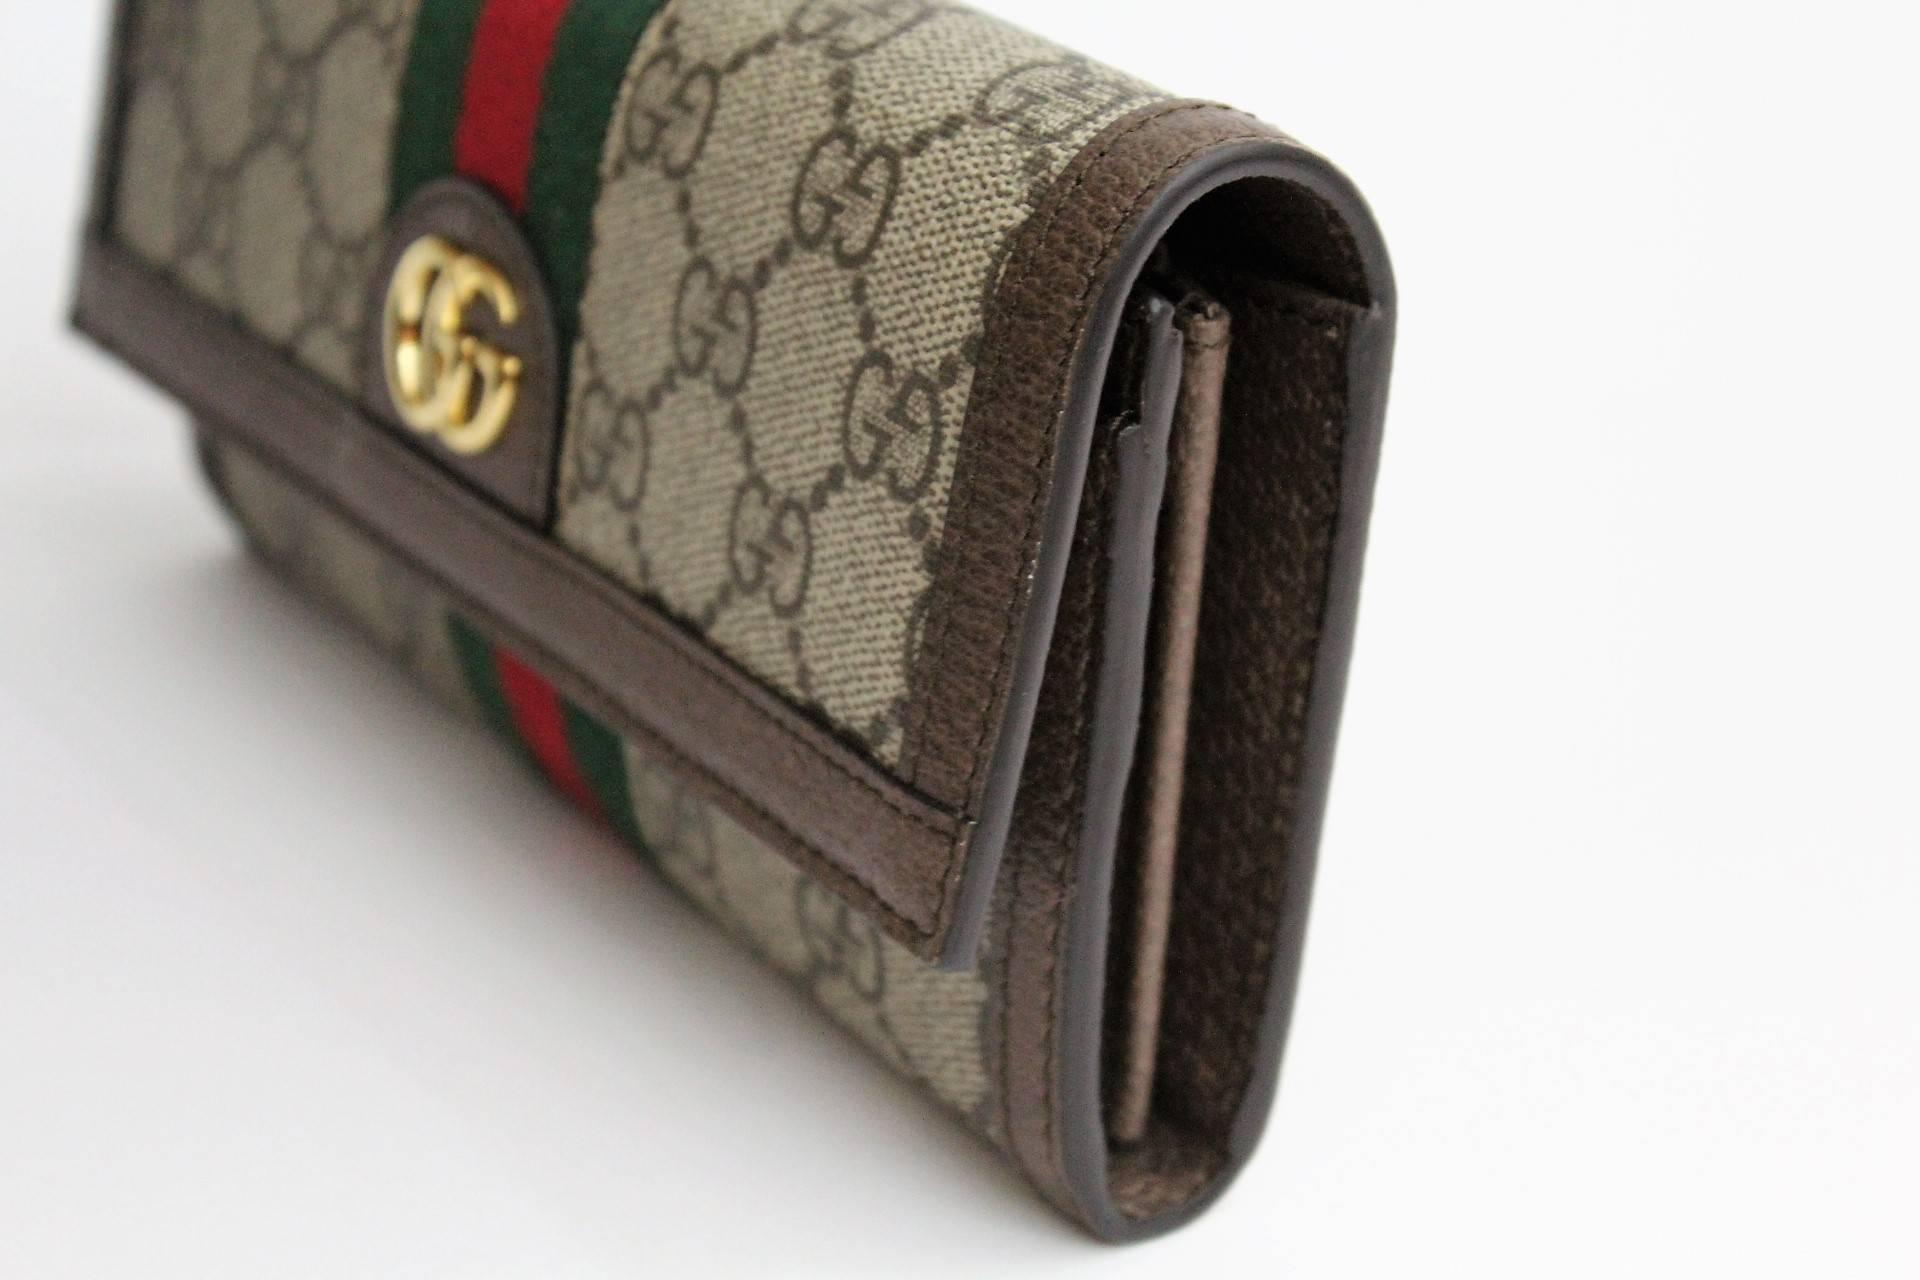 1f762a61cef Gucci Ophidia GG continental wallet For Sale at 1stdibs